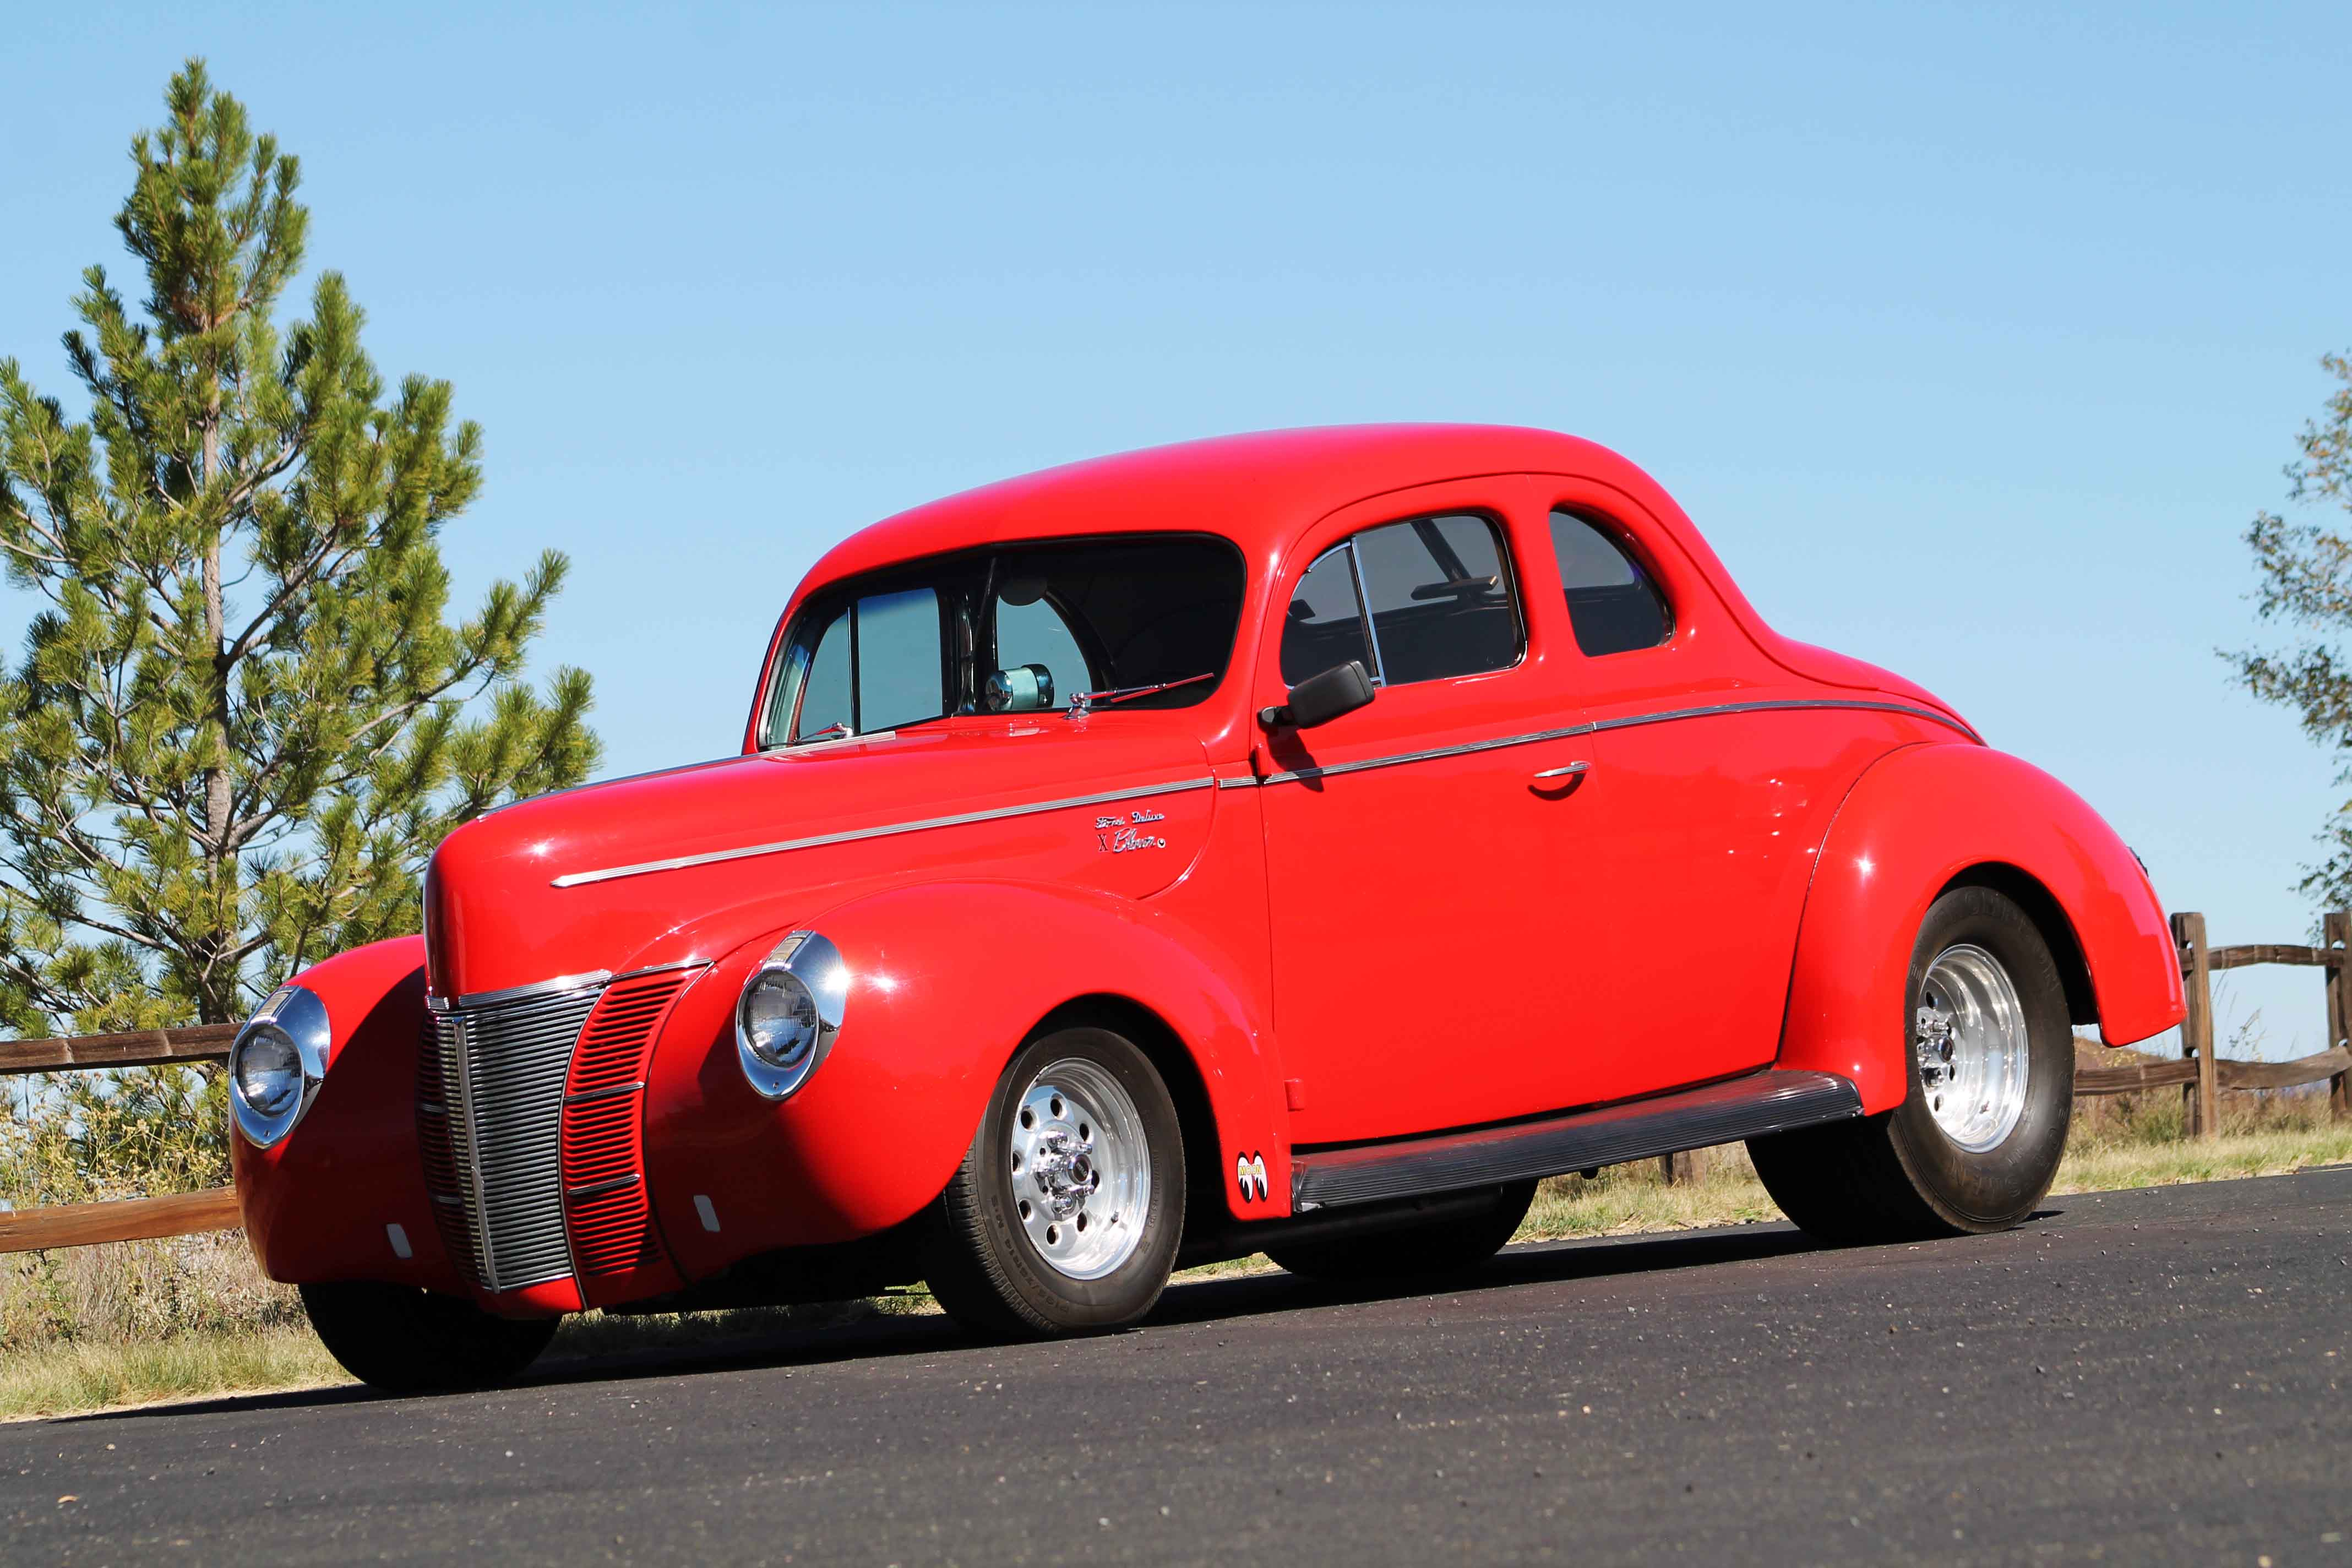 1940 Ford Deluxe Coupe hot rod rods retro r wallpaper background